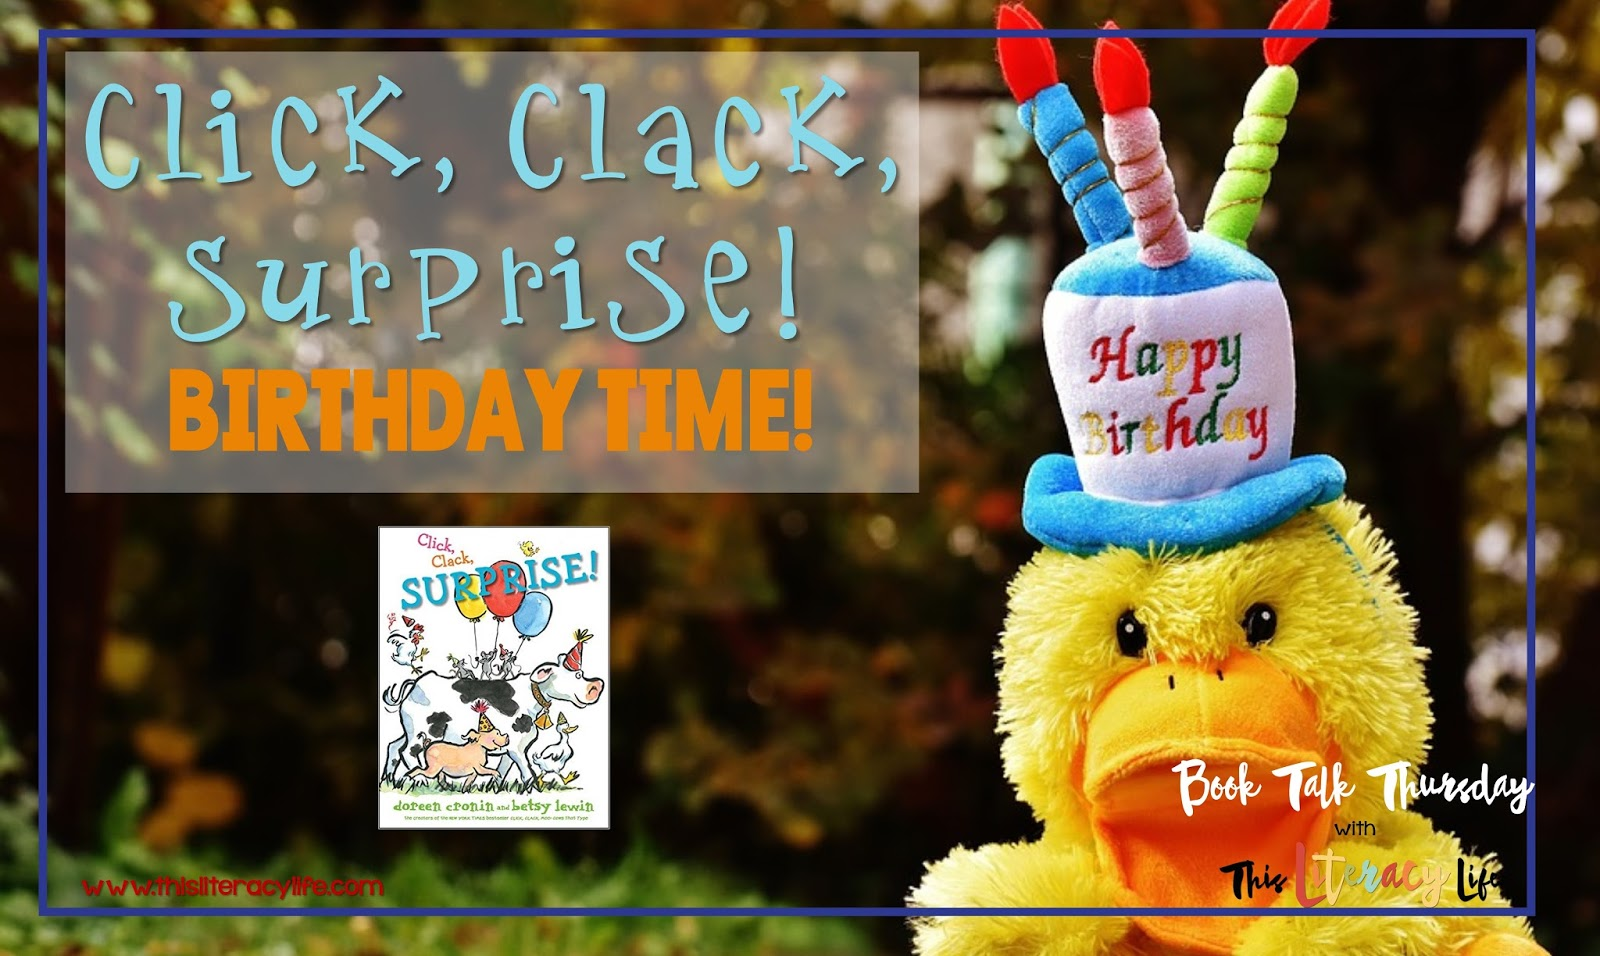 Birthdays are fun, and little duck's first birthday will be like no other! This Book Talk Thursday feature will have everyone reading and laughing together!